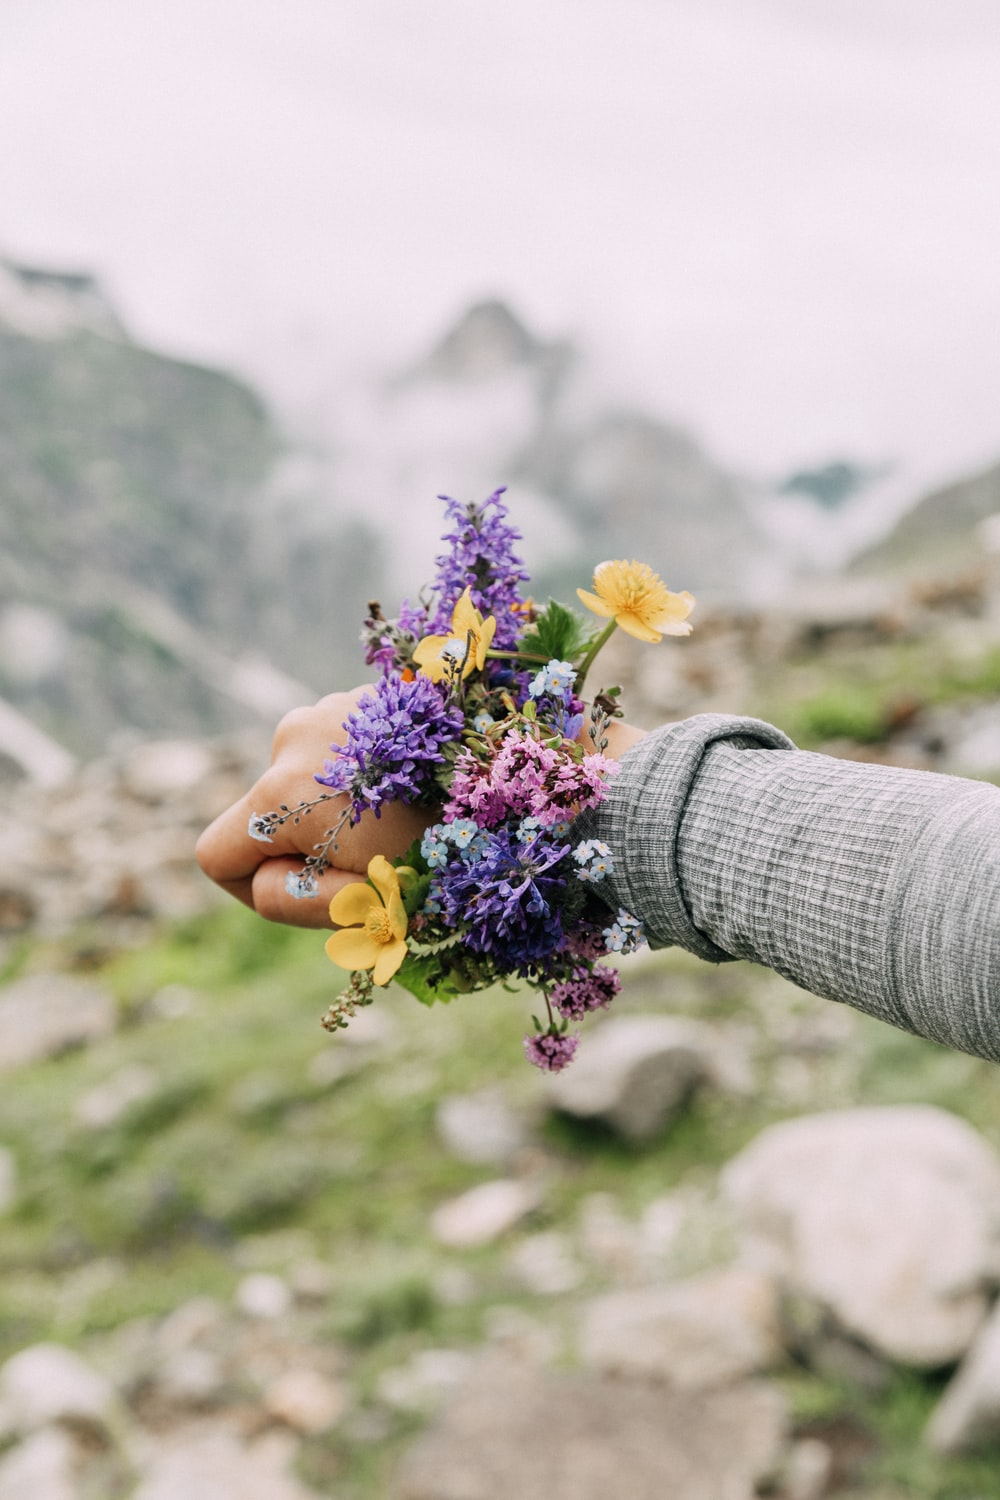 woman shows her purple and yellow flower bracelet on her wrist